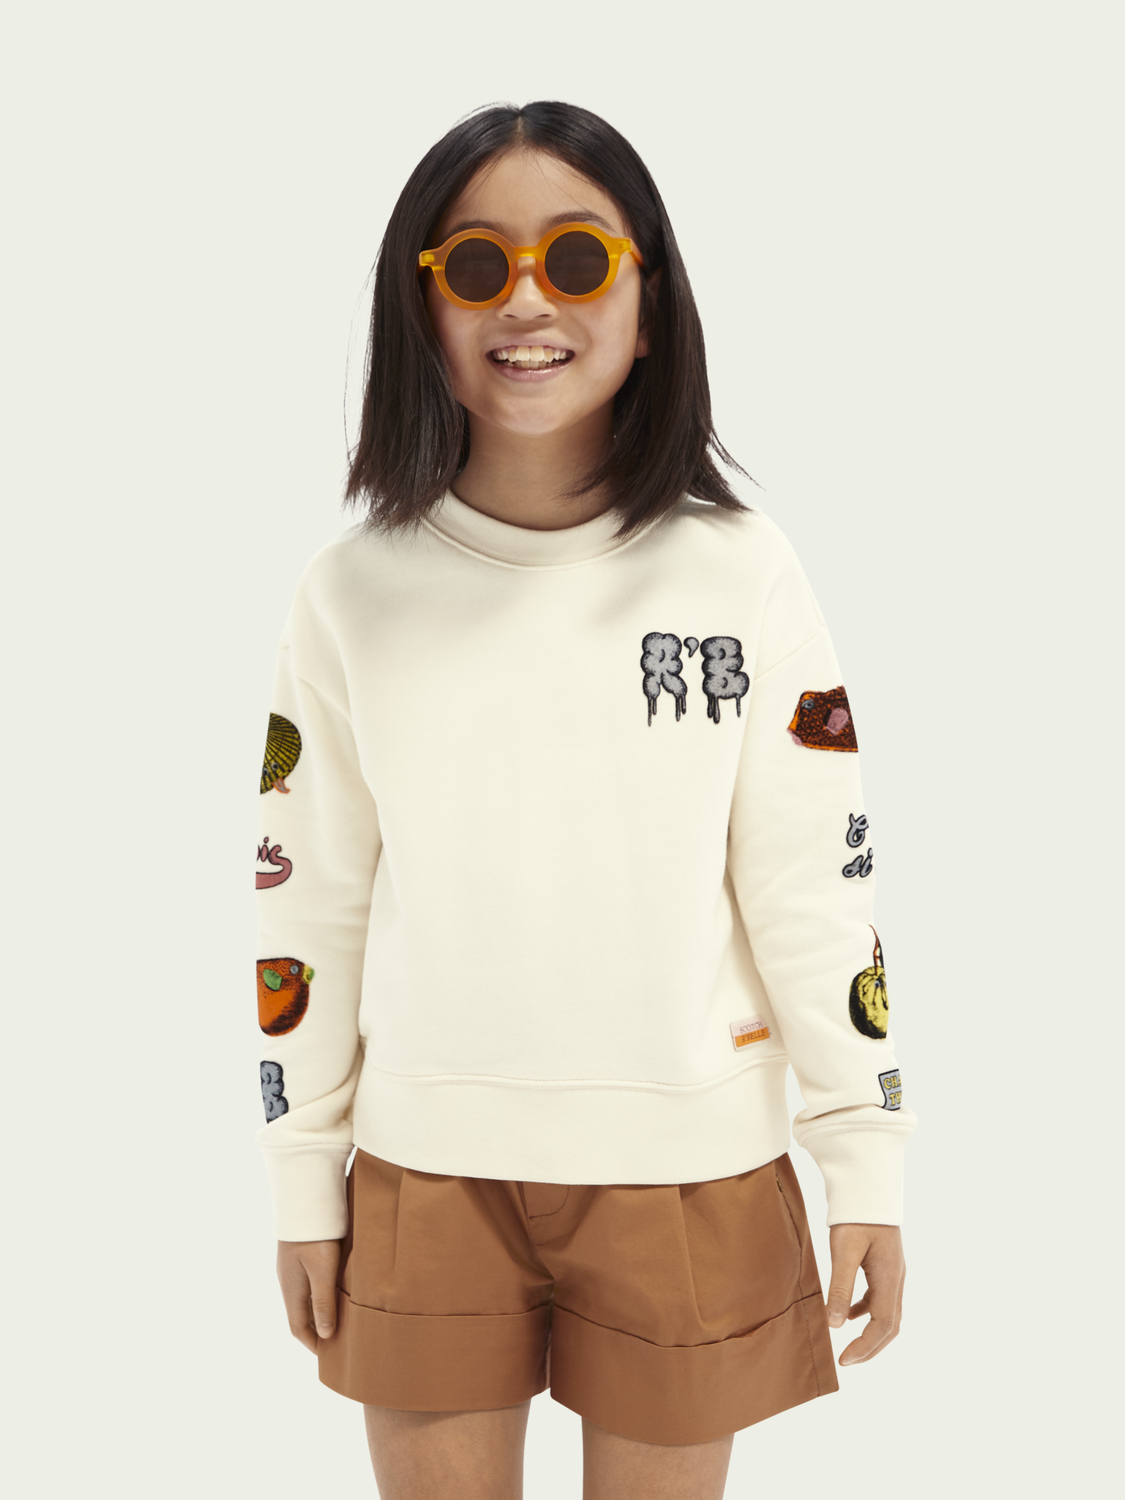 Kids Relaxed-fit graphic cotton-blend sweatshirt